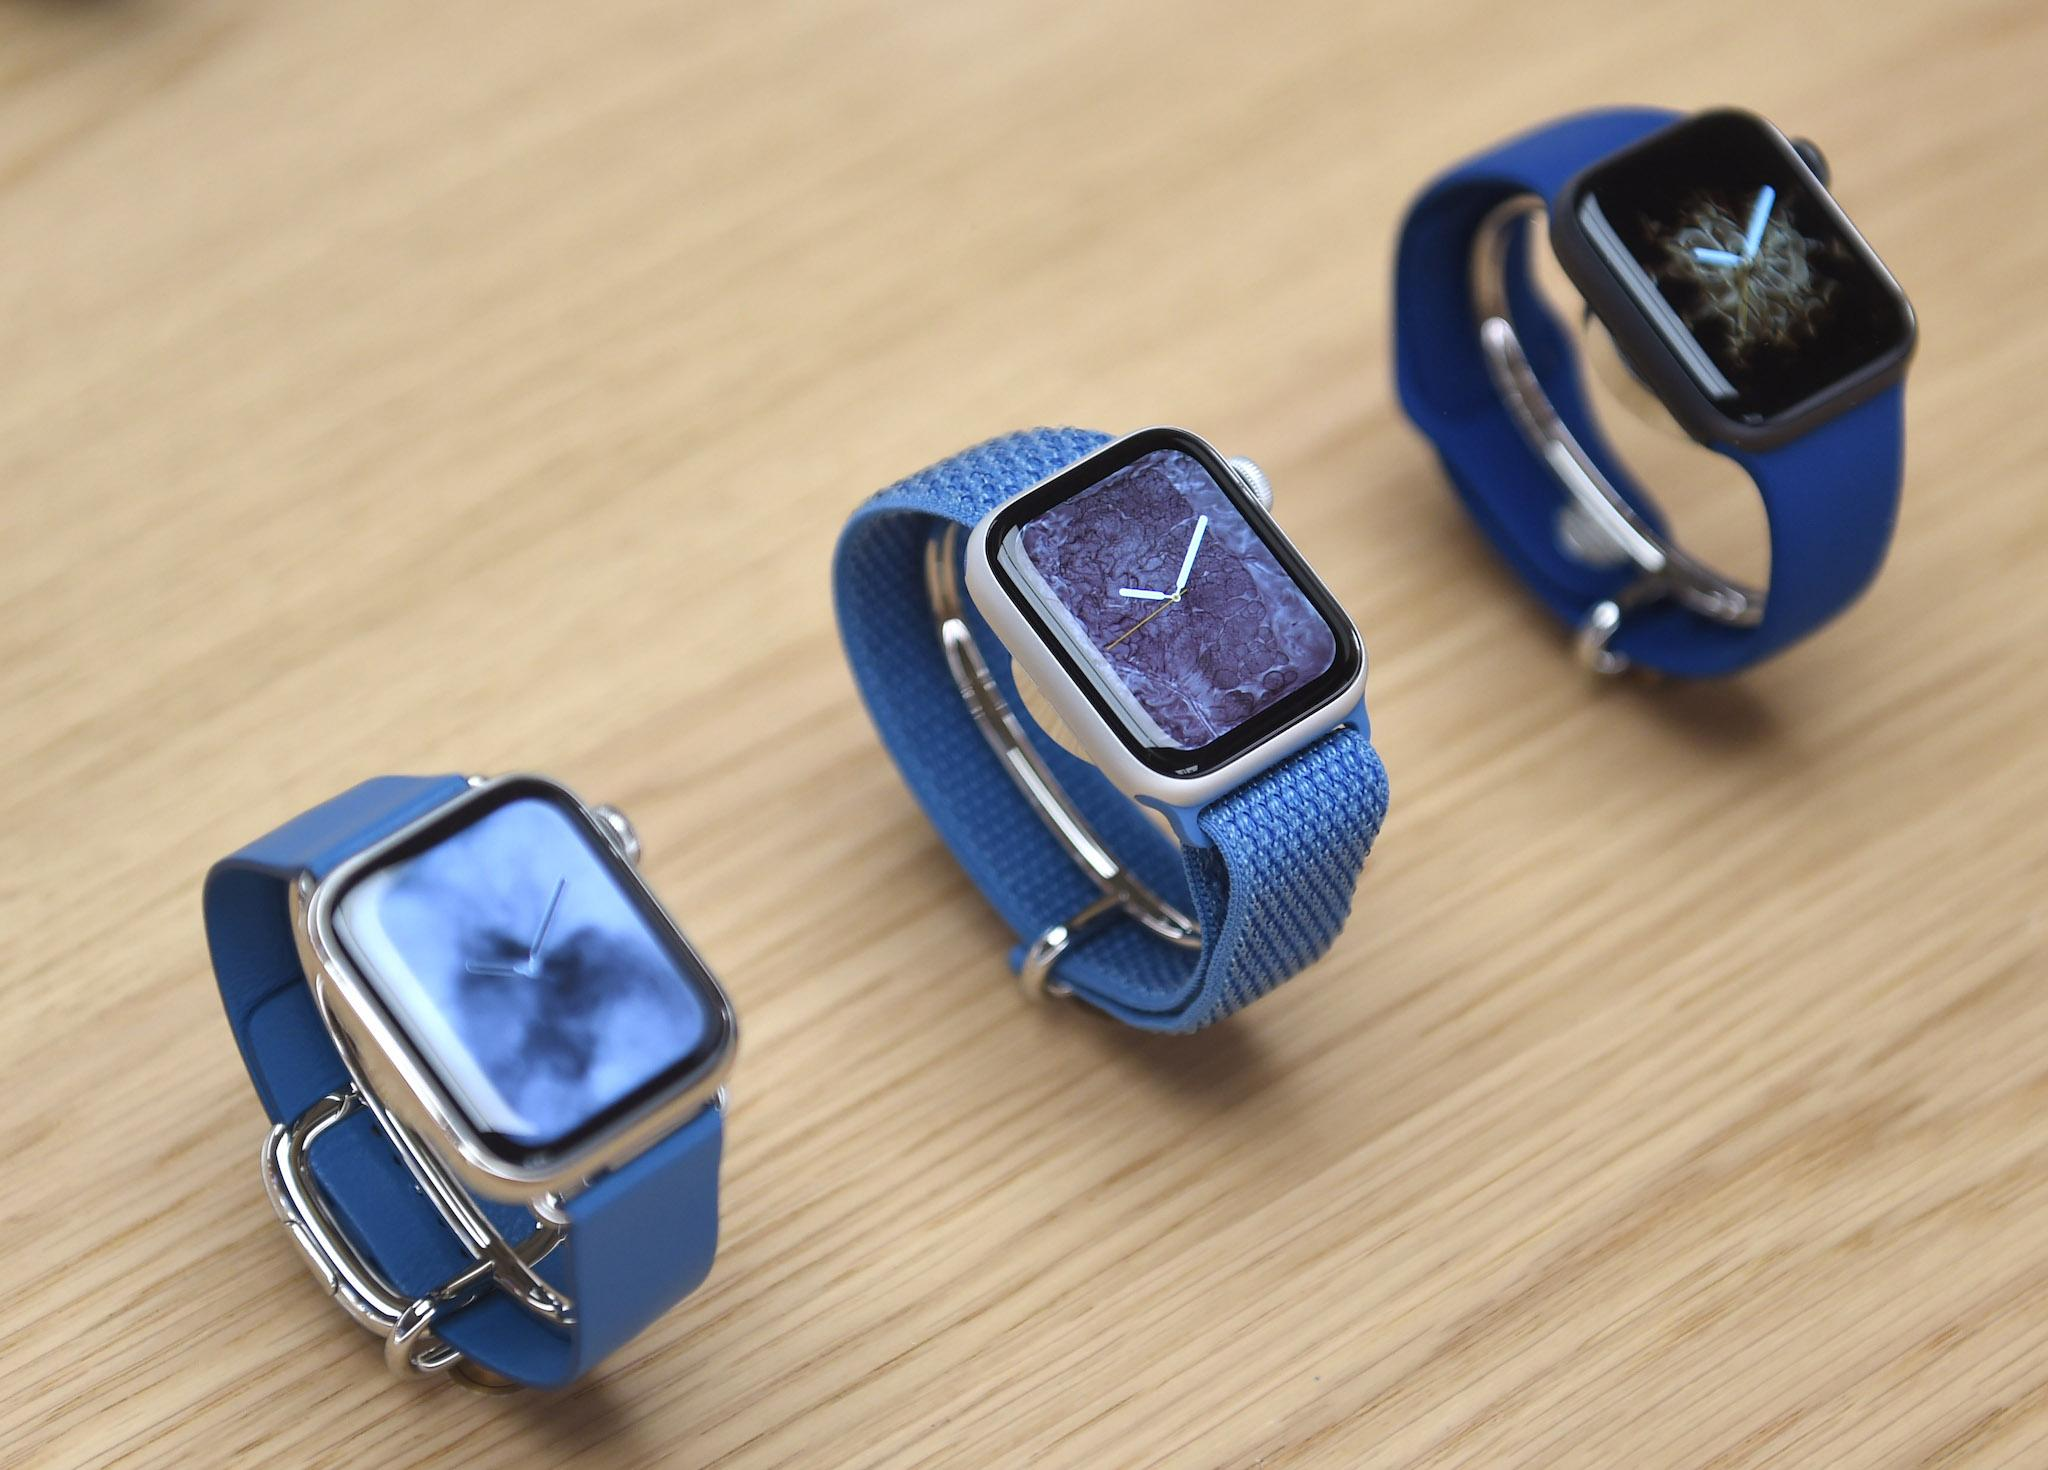 Apple Watch: Latest model could be made out of completely new materials, hidden code suggests